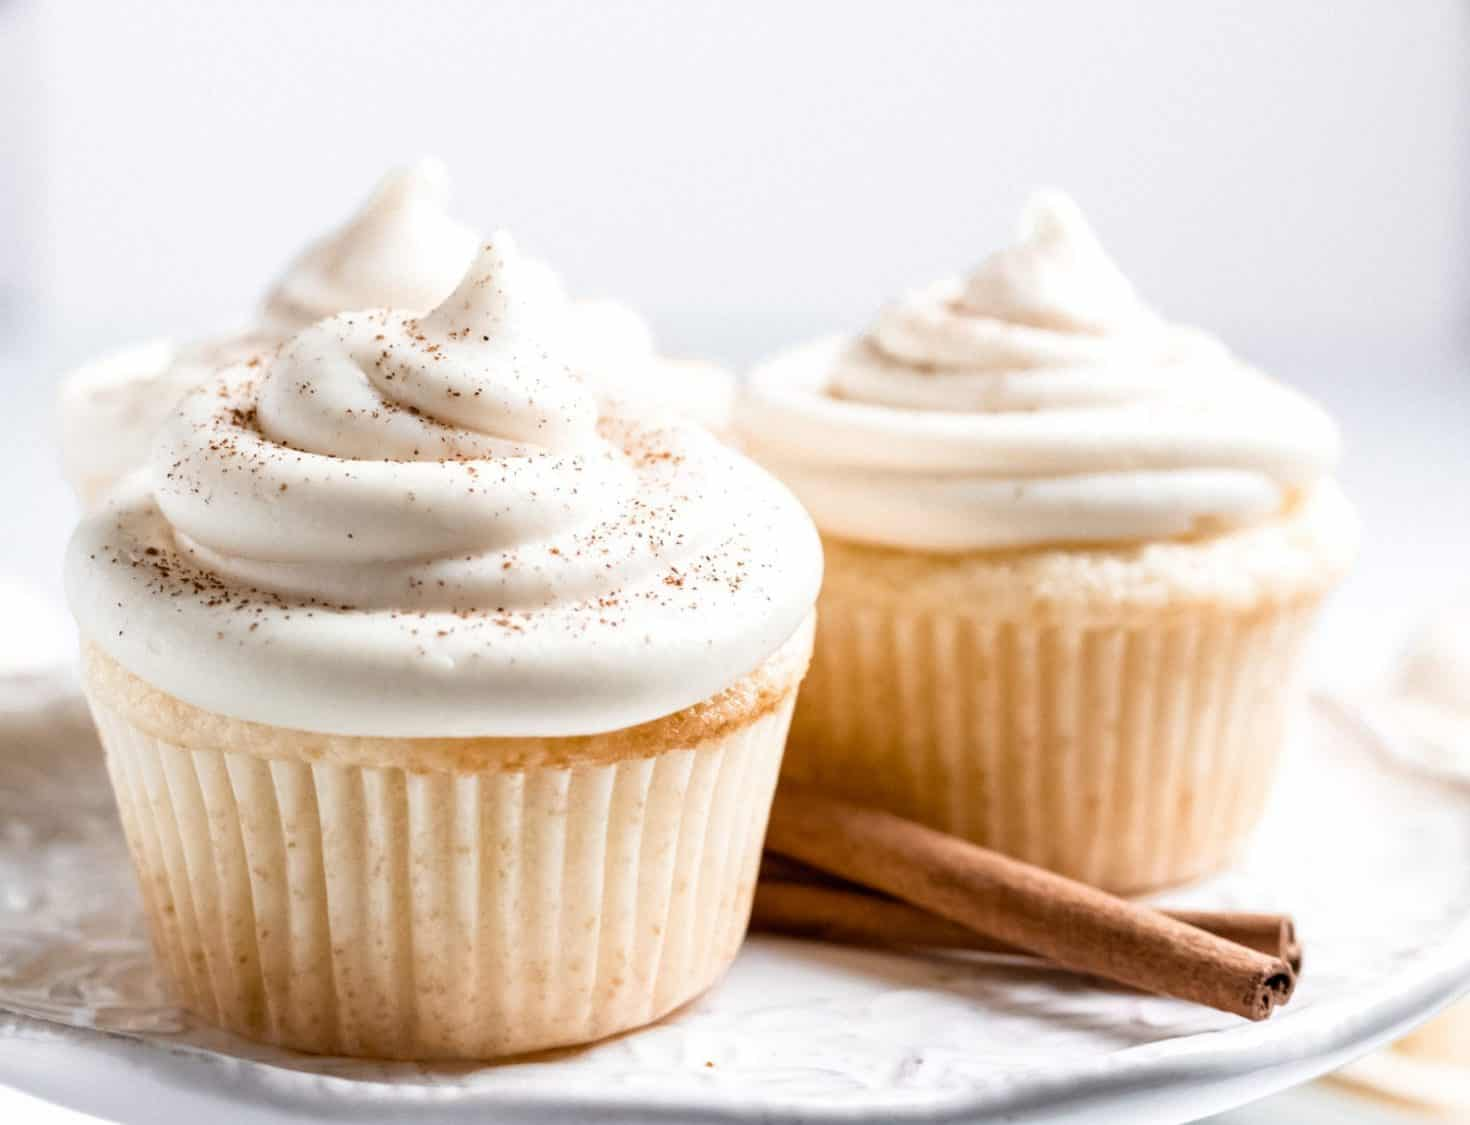 three vanilla buttermilk cupcakes with maple cream cheese frosting and two cinnamon sticks